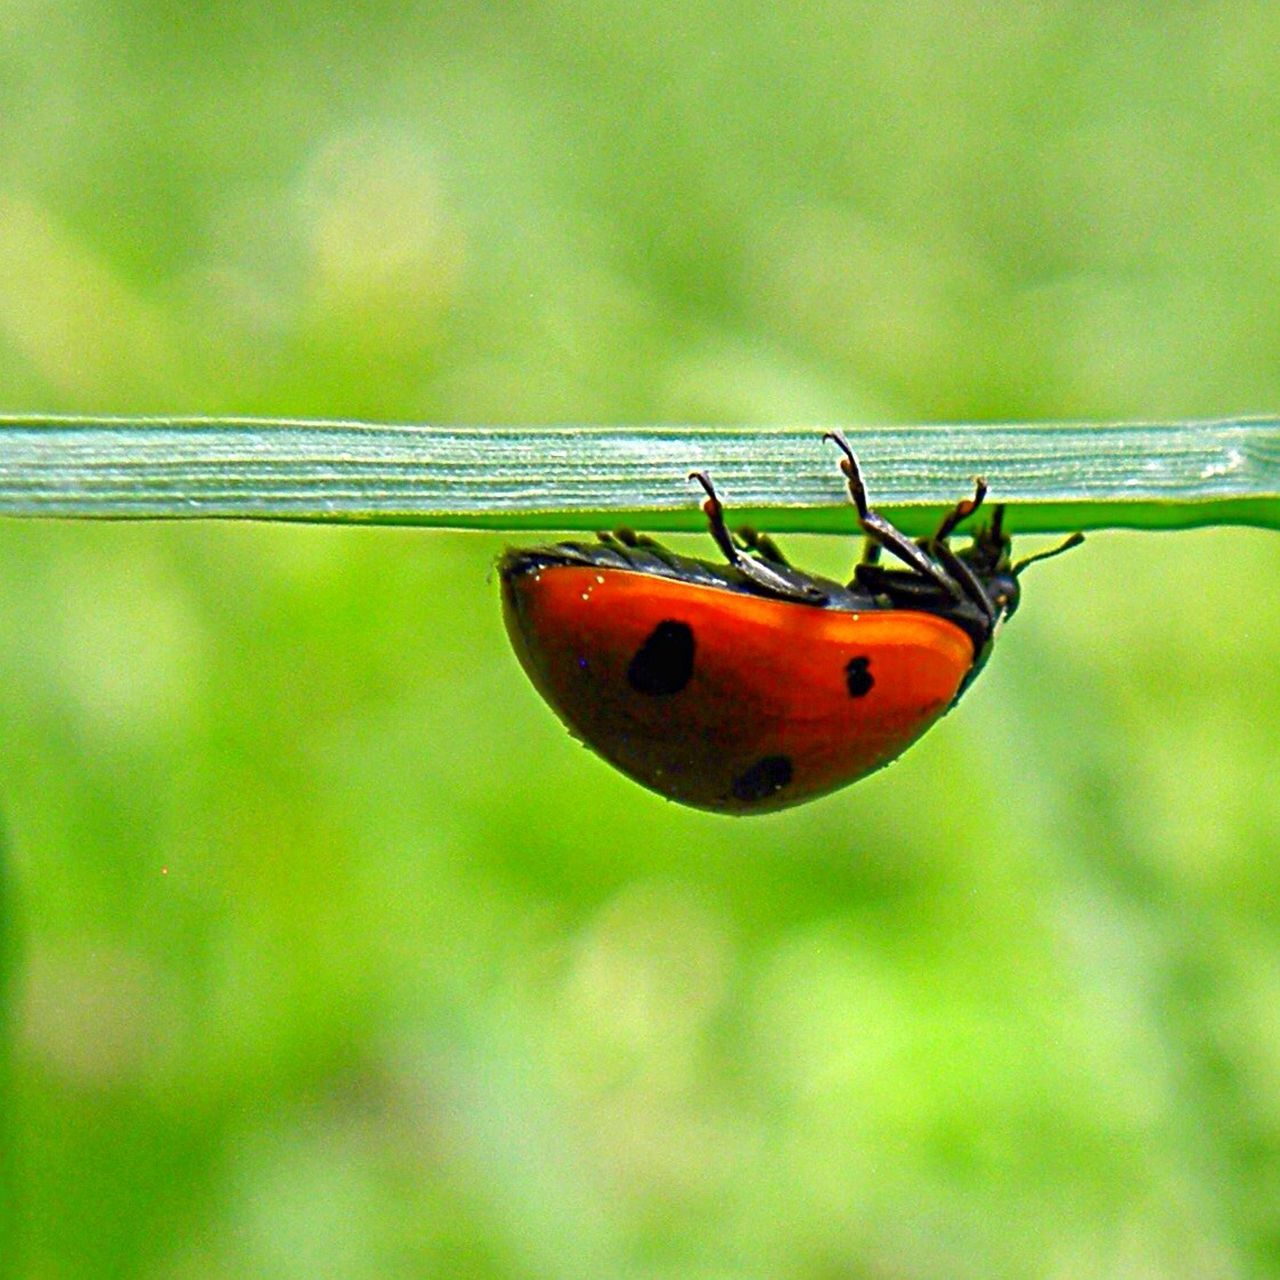 Insect Animal Themes One Animal Animals In The Wild Focus On Foreground Close-up Nature No People Natural Simplicity Green Nature Spotted Green Color Grass Ladybird Ladybug Ladybeetle Upside Down Red Nature Leaf Red Ladybug Day Outdoors Tiny